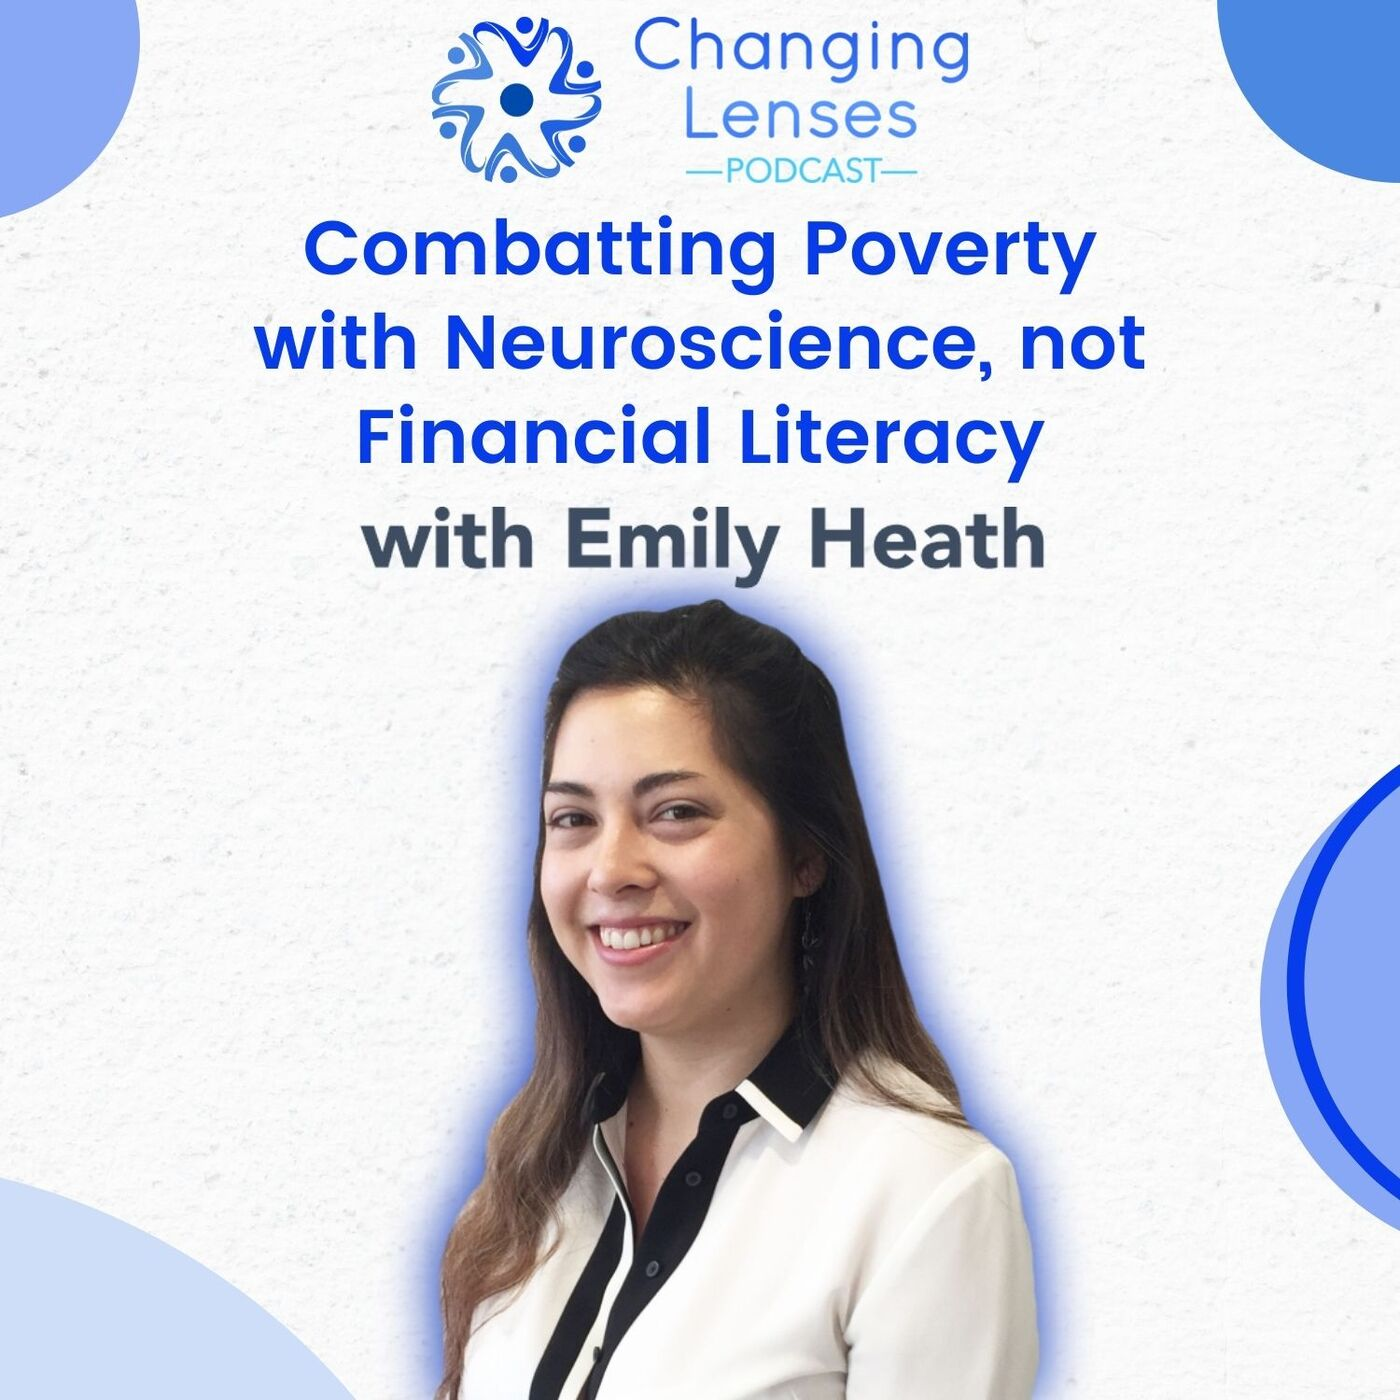 Ep21: Combatting Poverty with Neuroscience, not Financial Literacy, with Emily Heath